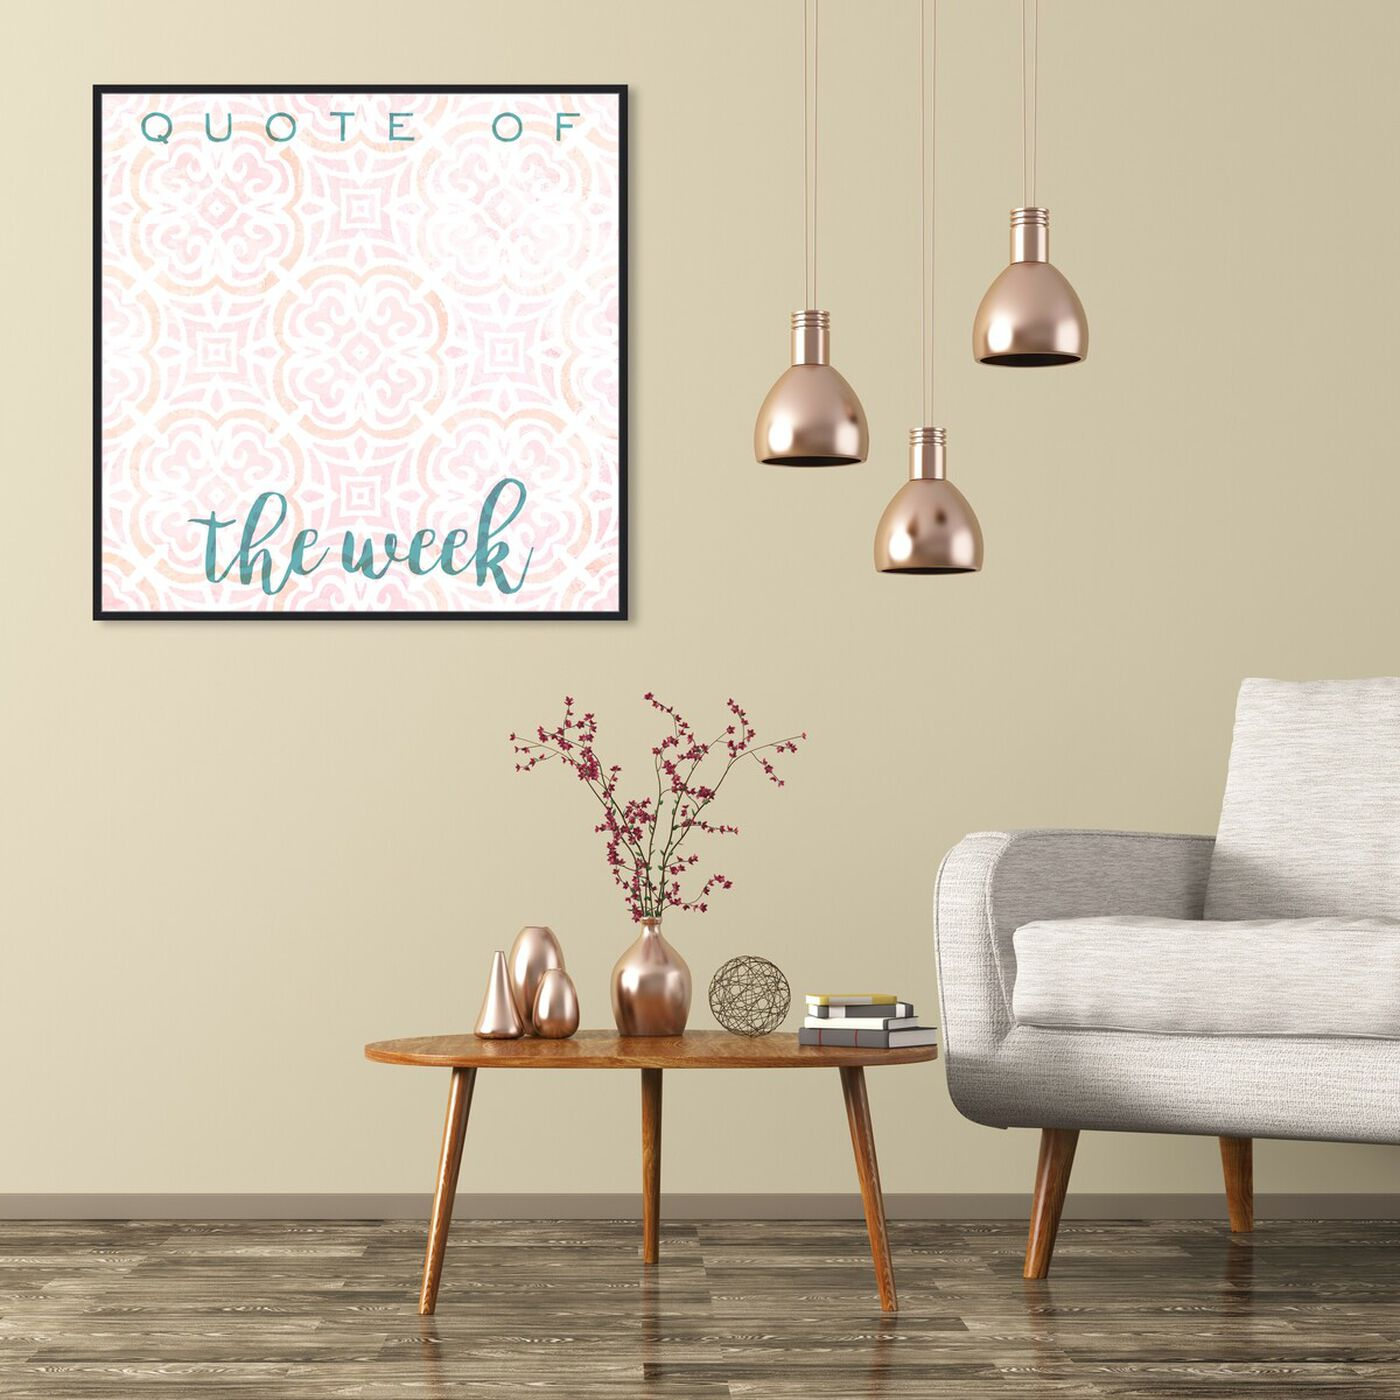 Hanging view of Quote Of The Week Bright featuring education and office and whiteboards art.